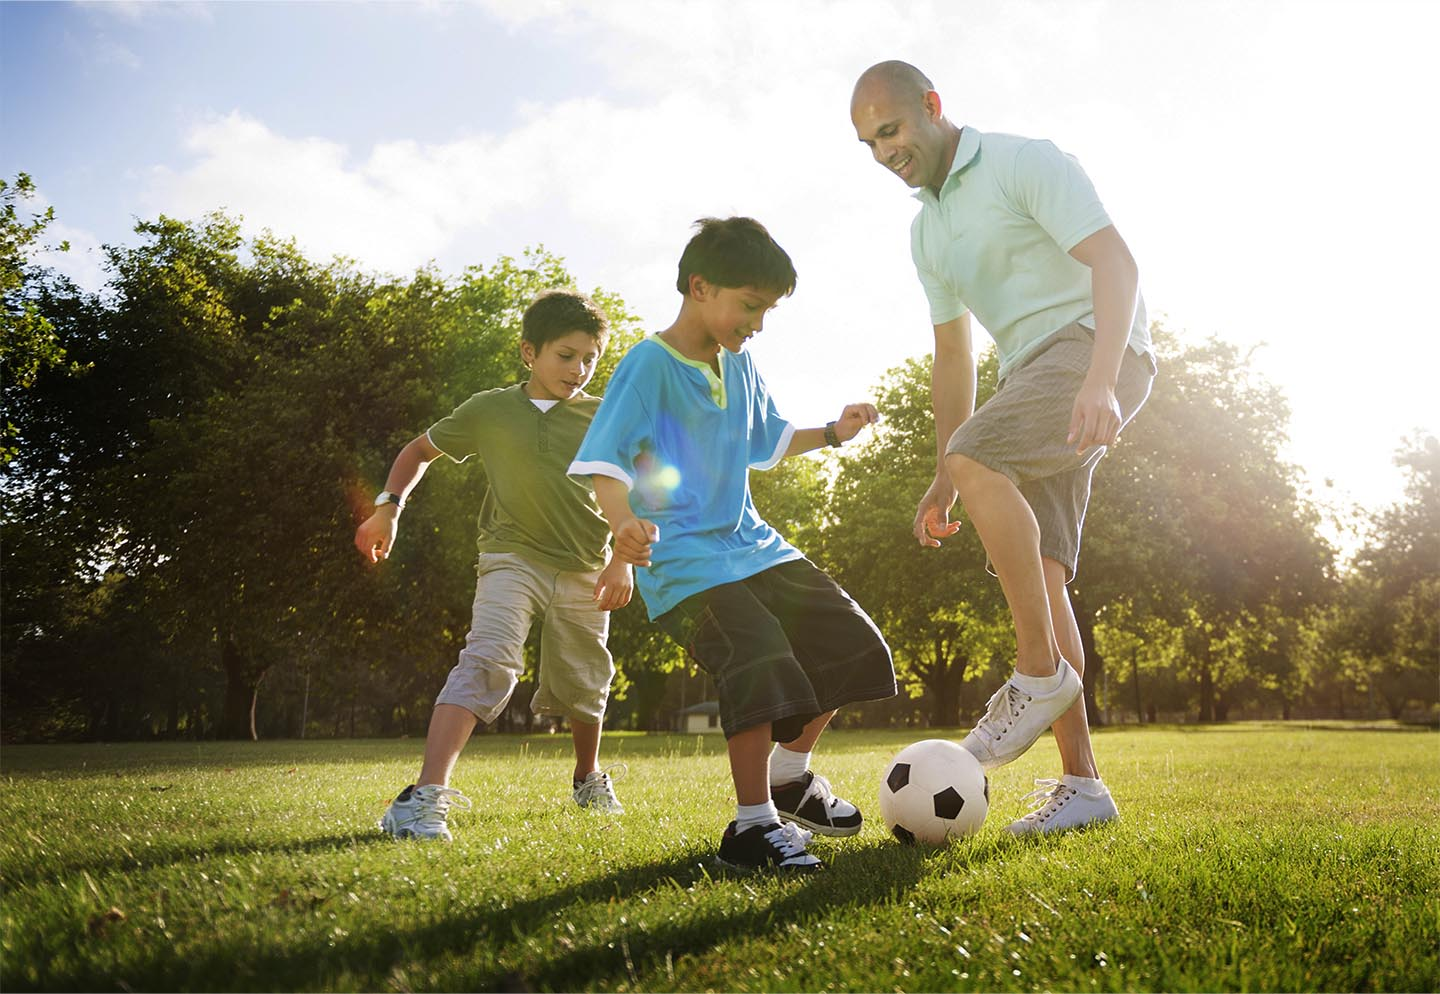 Image of father and sons playing soccer.